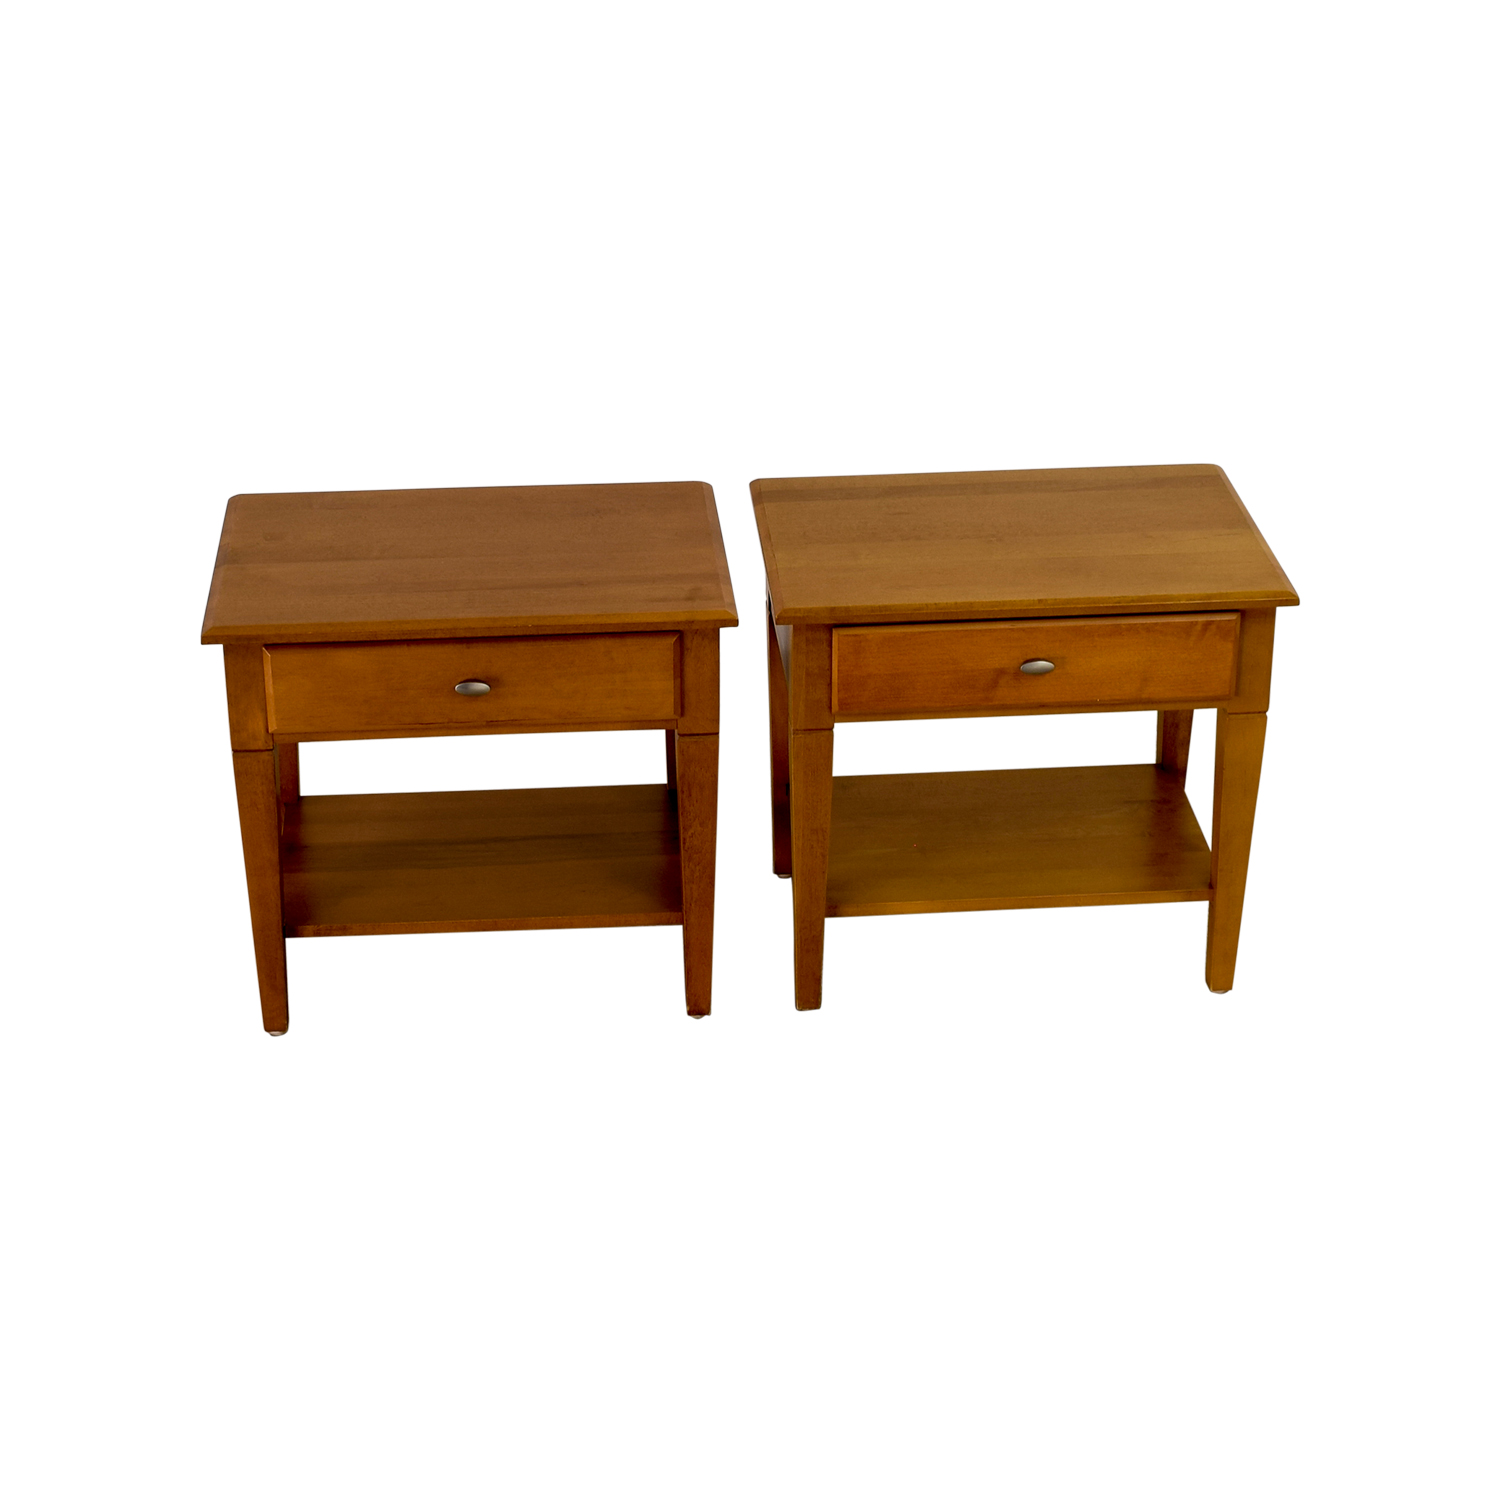 Ethan Allen Ethan Allen Single Drawer End Tables discount